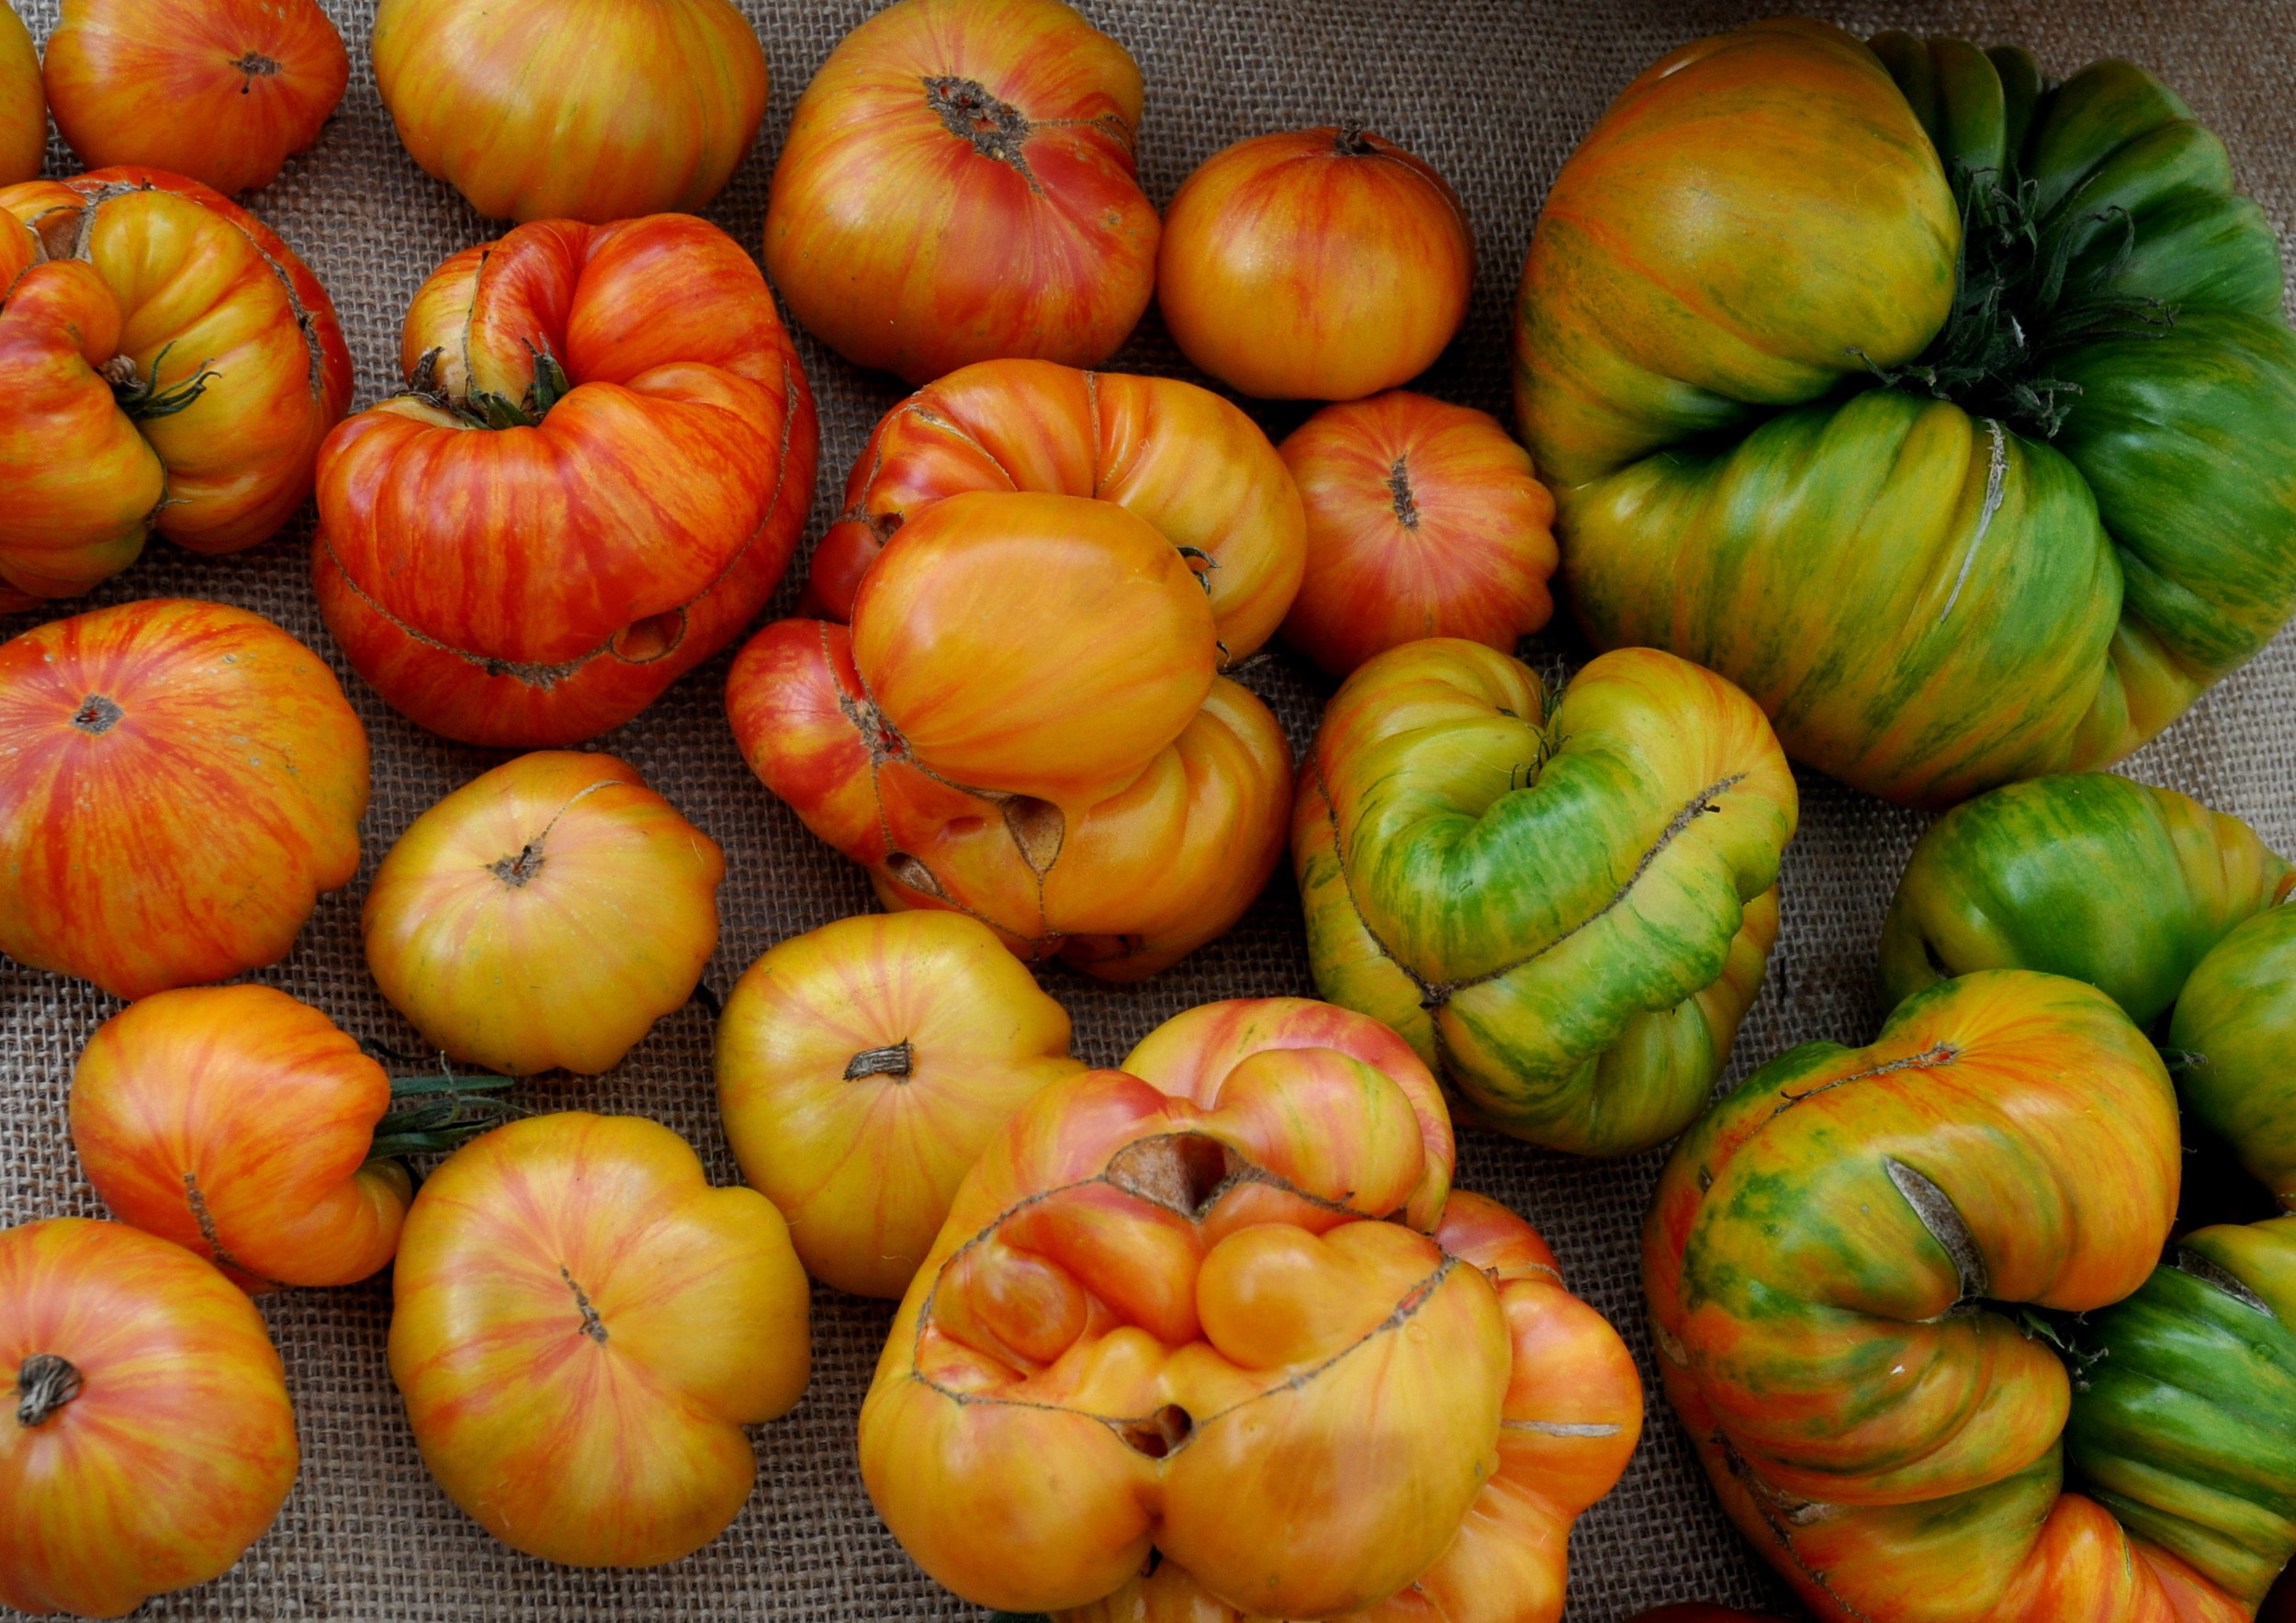 Copia tomatoes from One Leaf Farm. Photo copyright 2013 by Zachary D. Lyons.